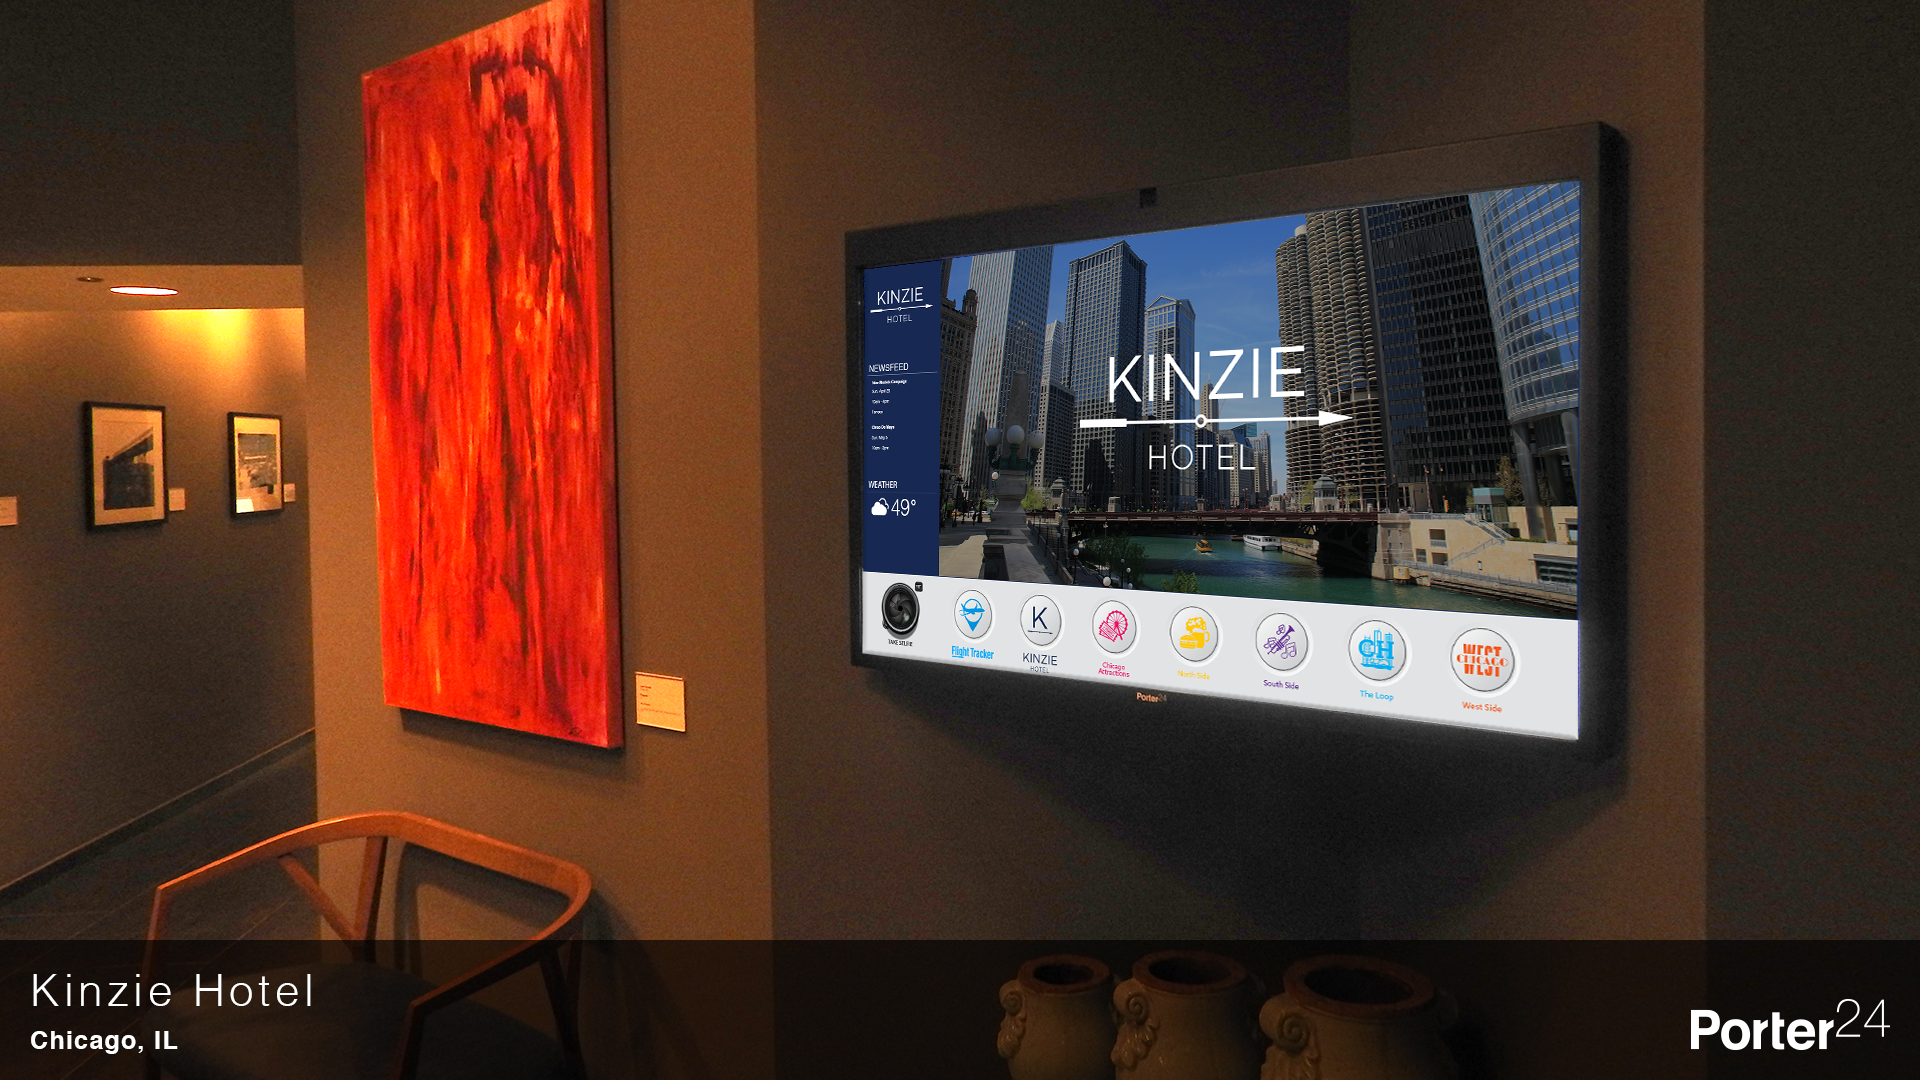 Porter24_KinzieHotel_Chicago_IL.png